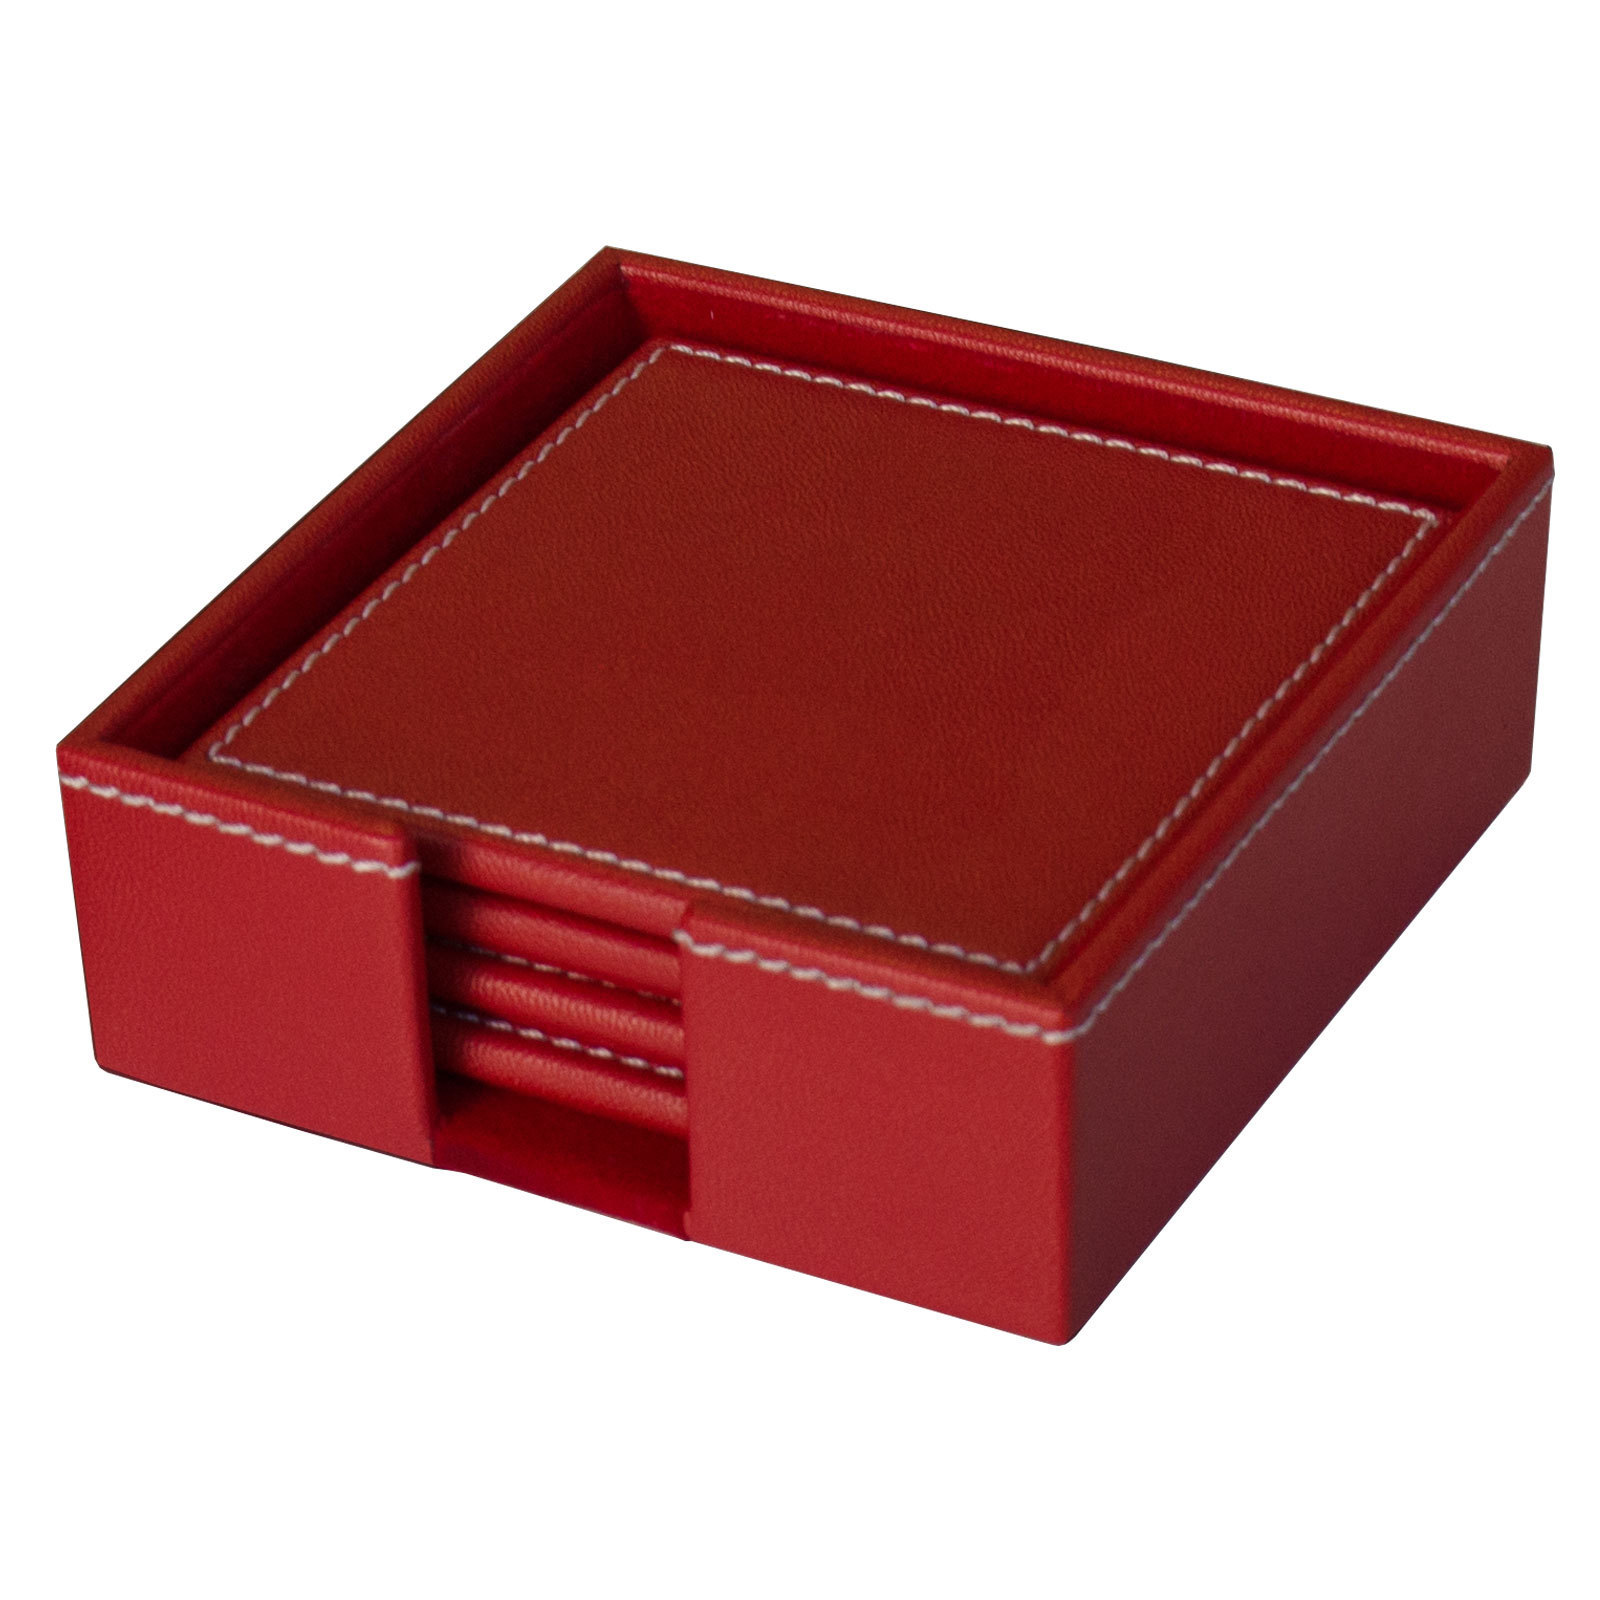 Red Leather Coaster Set with Holder WAUCUSTK662520